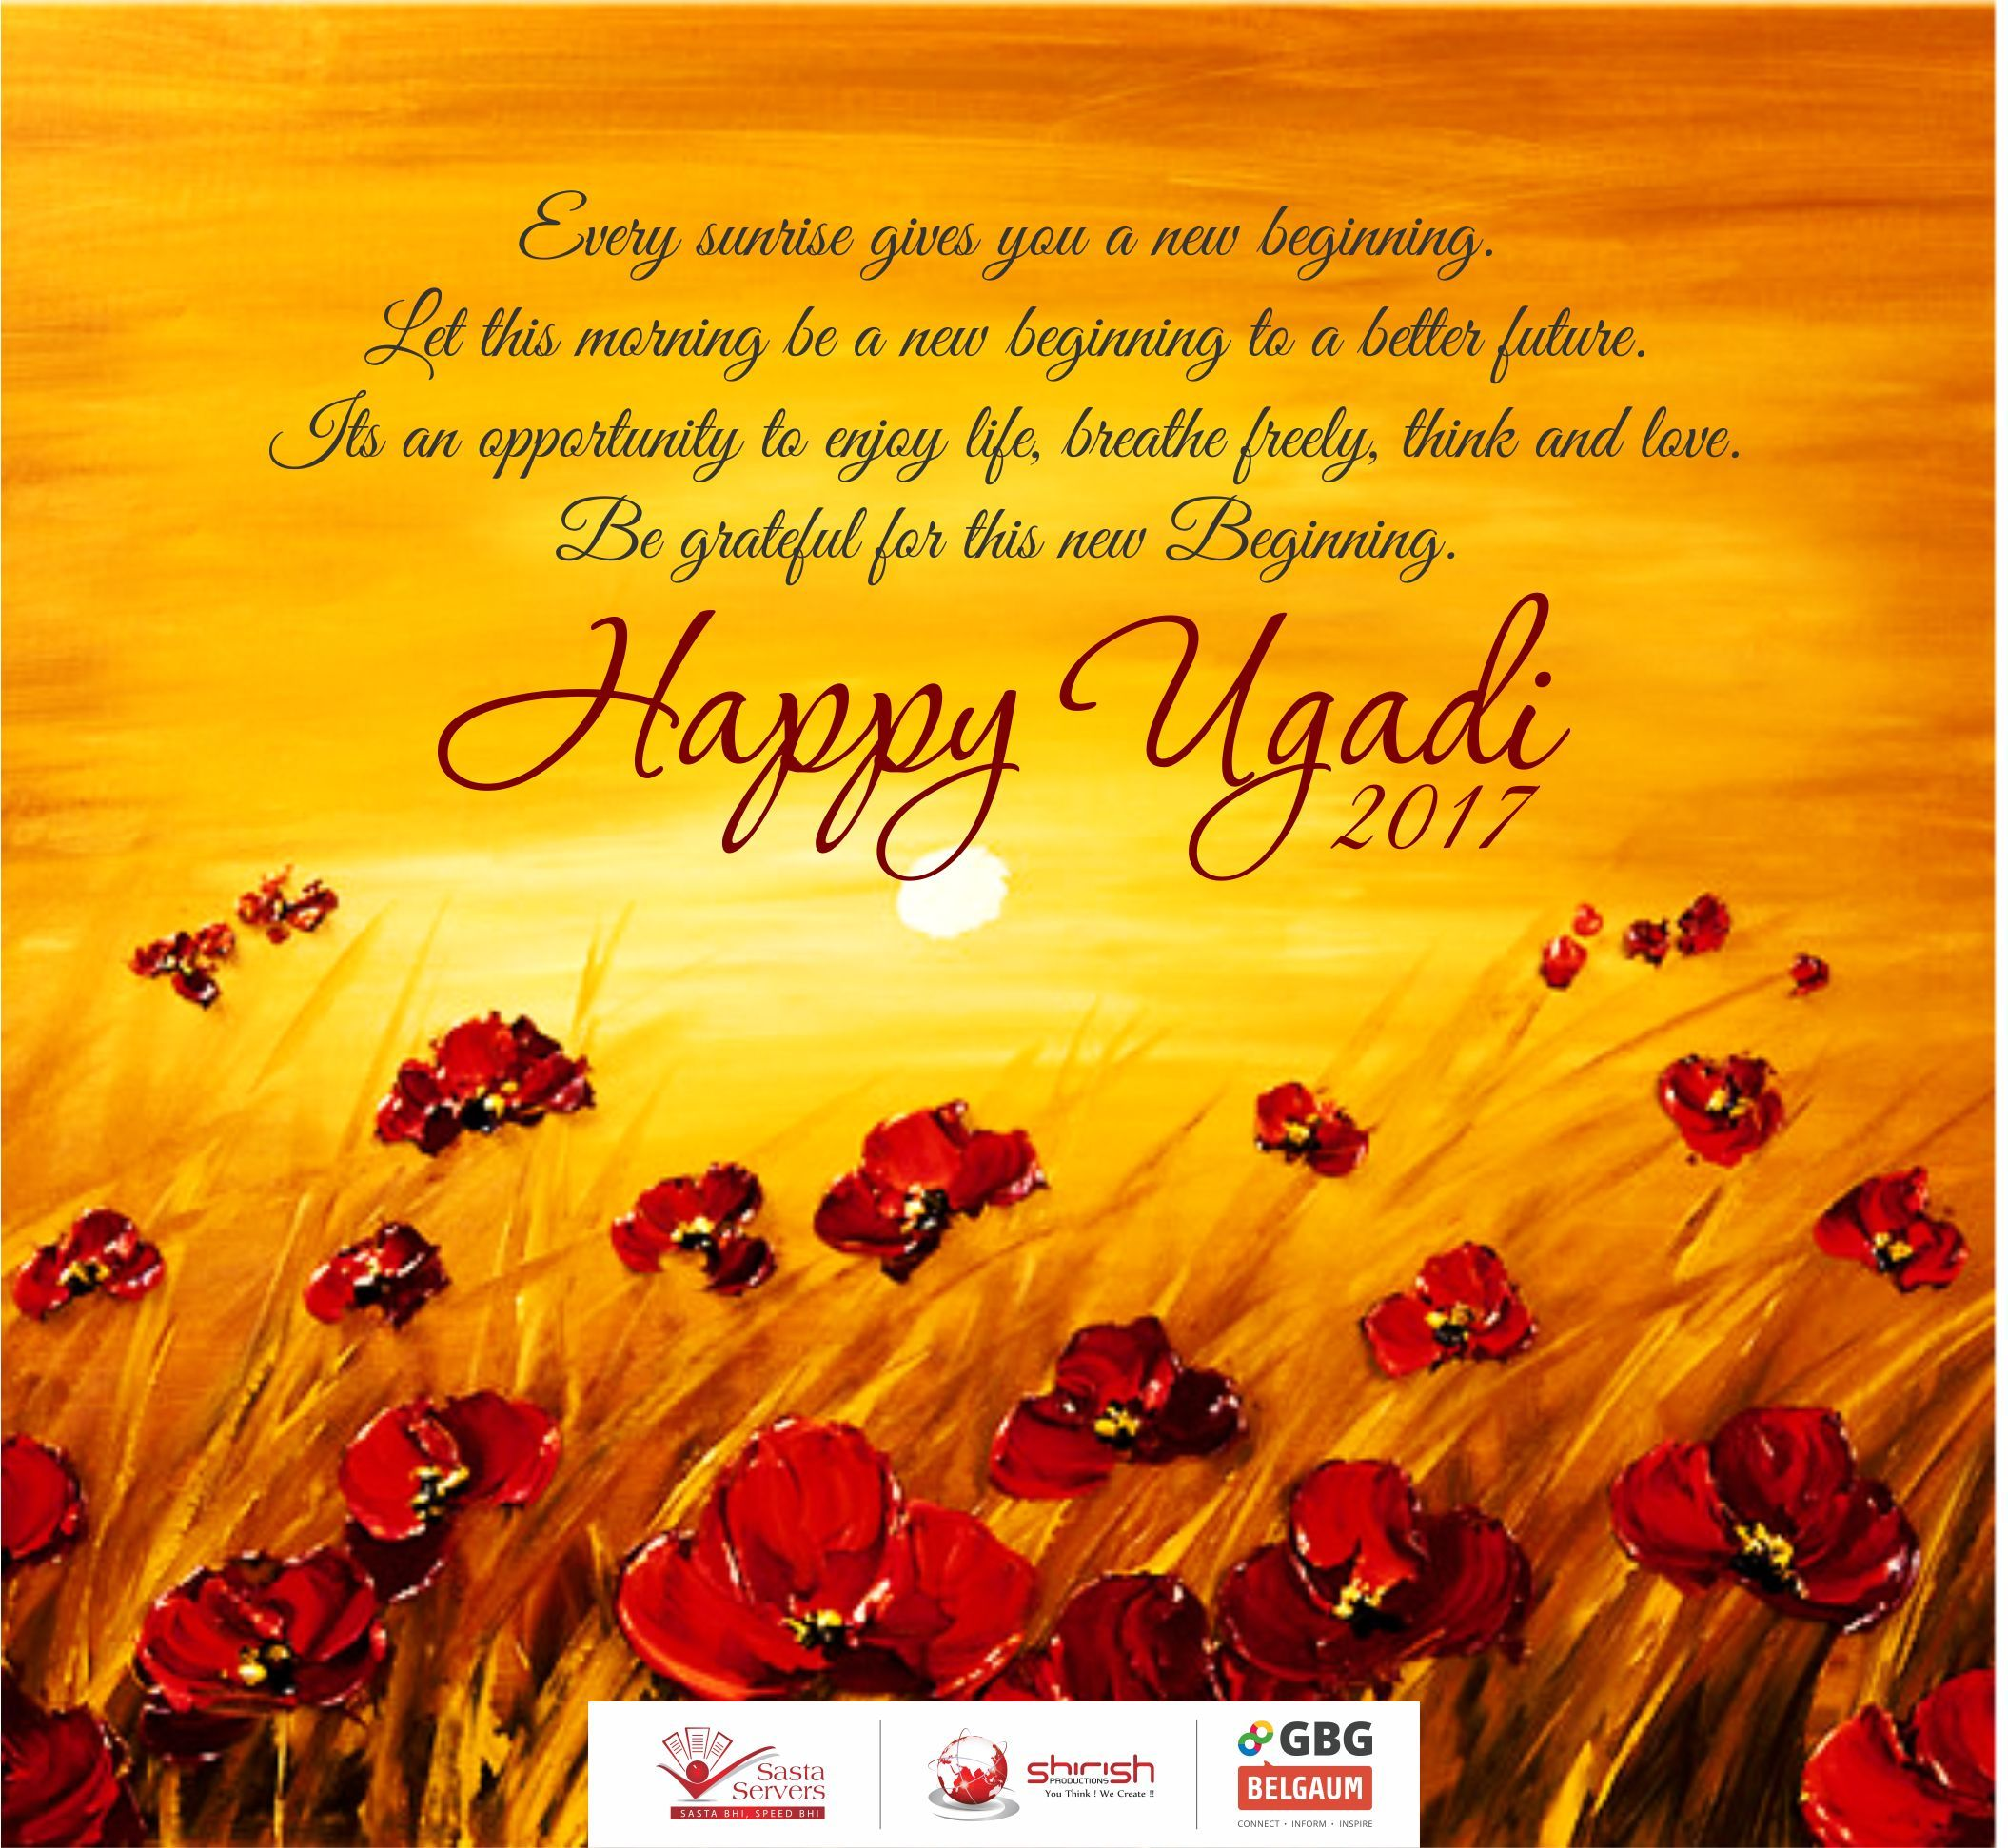 Wish you a very happy ugadi festival 2017 and prosperous new wish you a very happy ugadi festival 2017 and prosperous new kristyandbryce Images